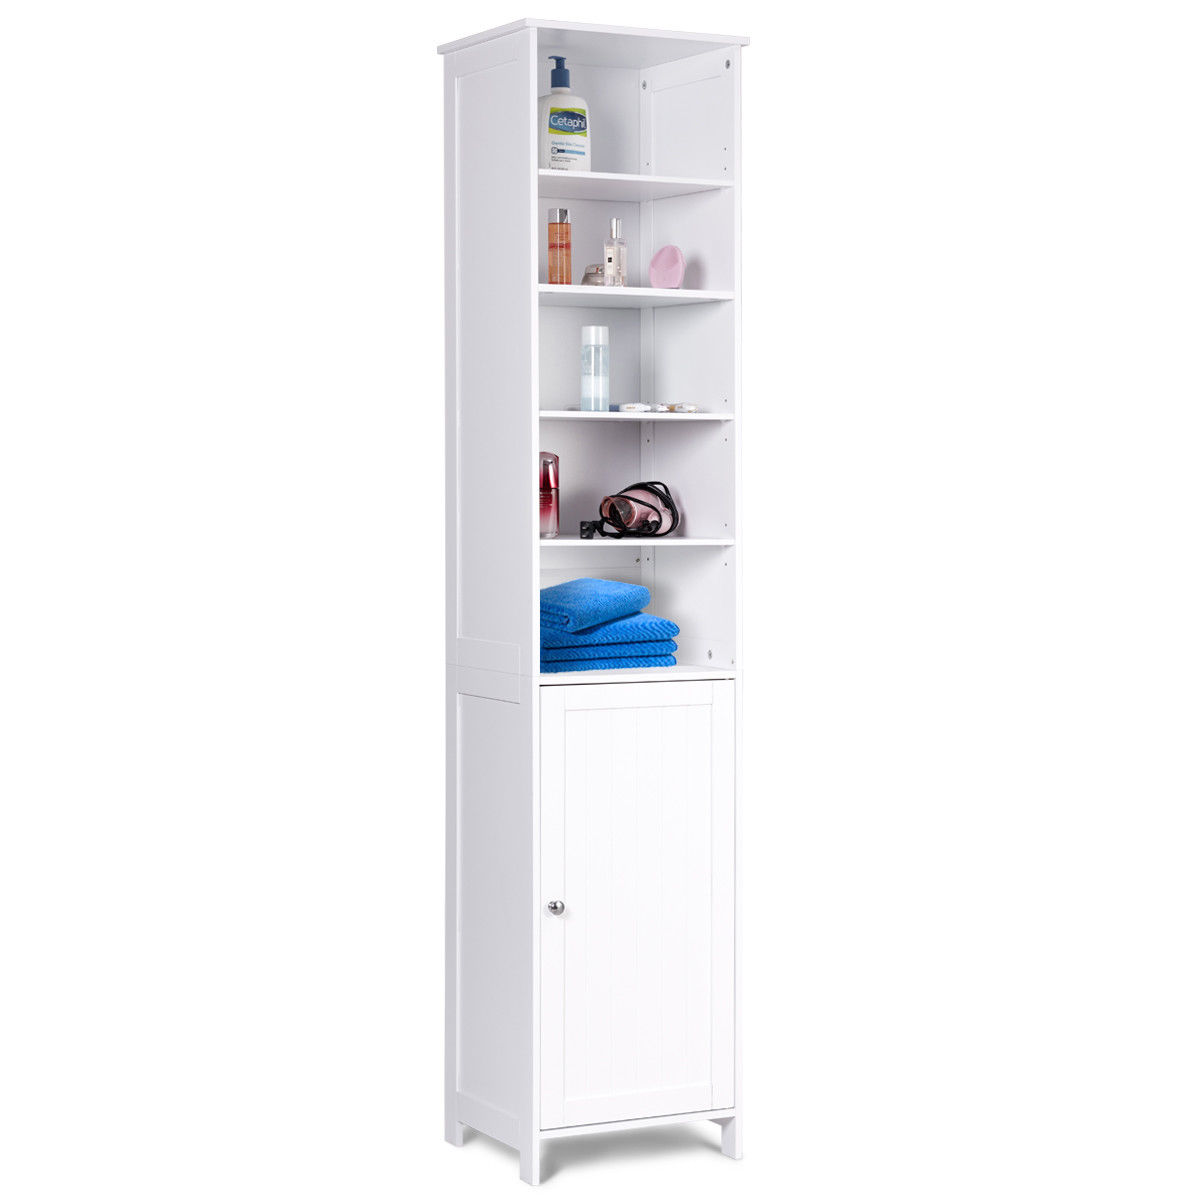 72''H Tall Floor Storage Cabinet Free Standing Shelving